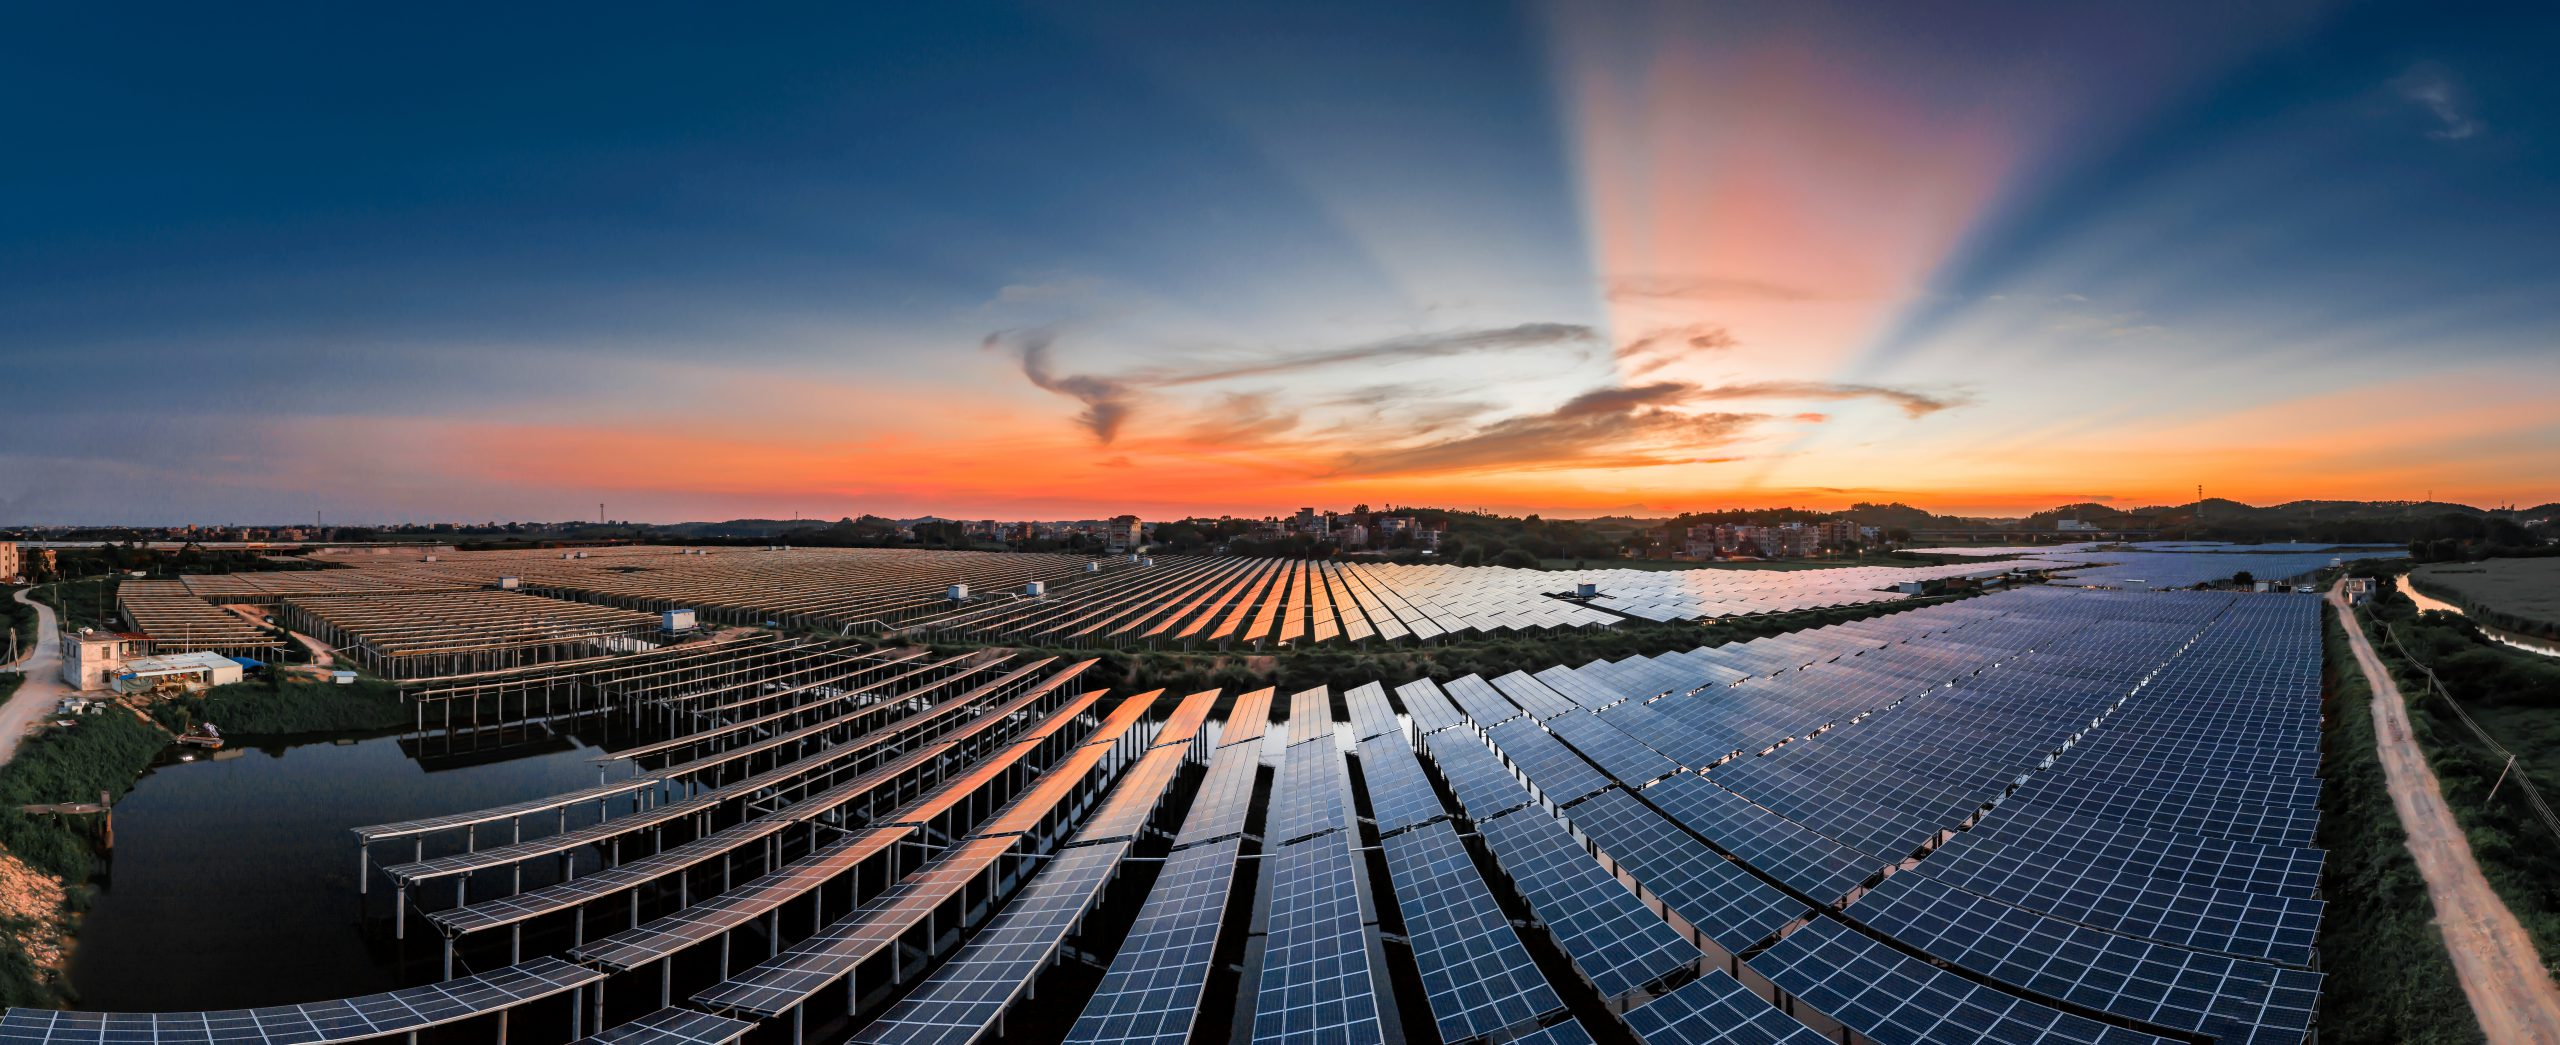 A solar power plant in a beautiful sunset